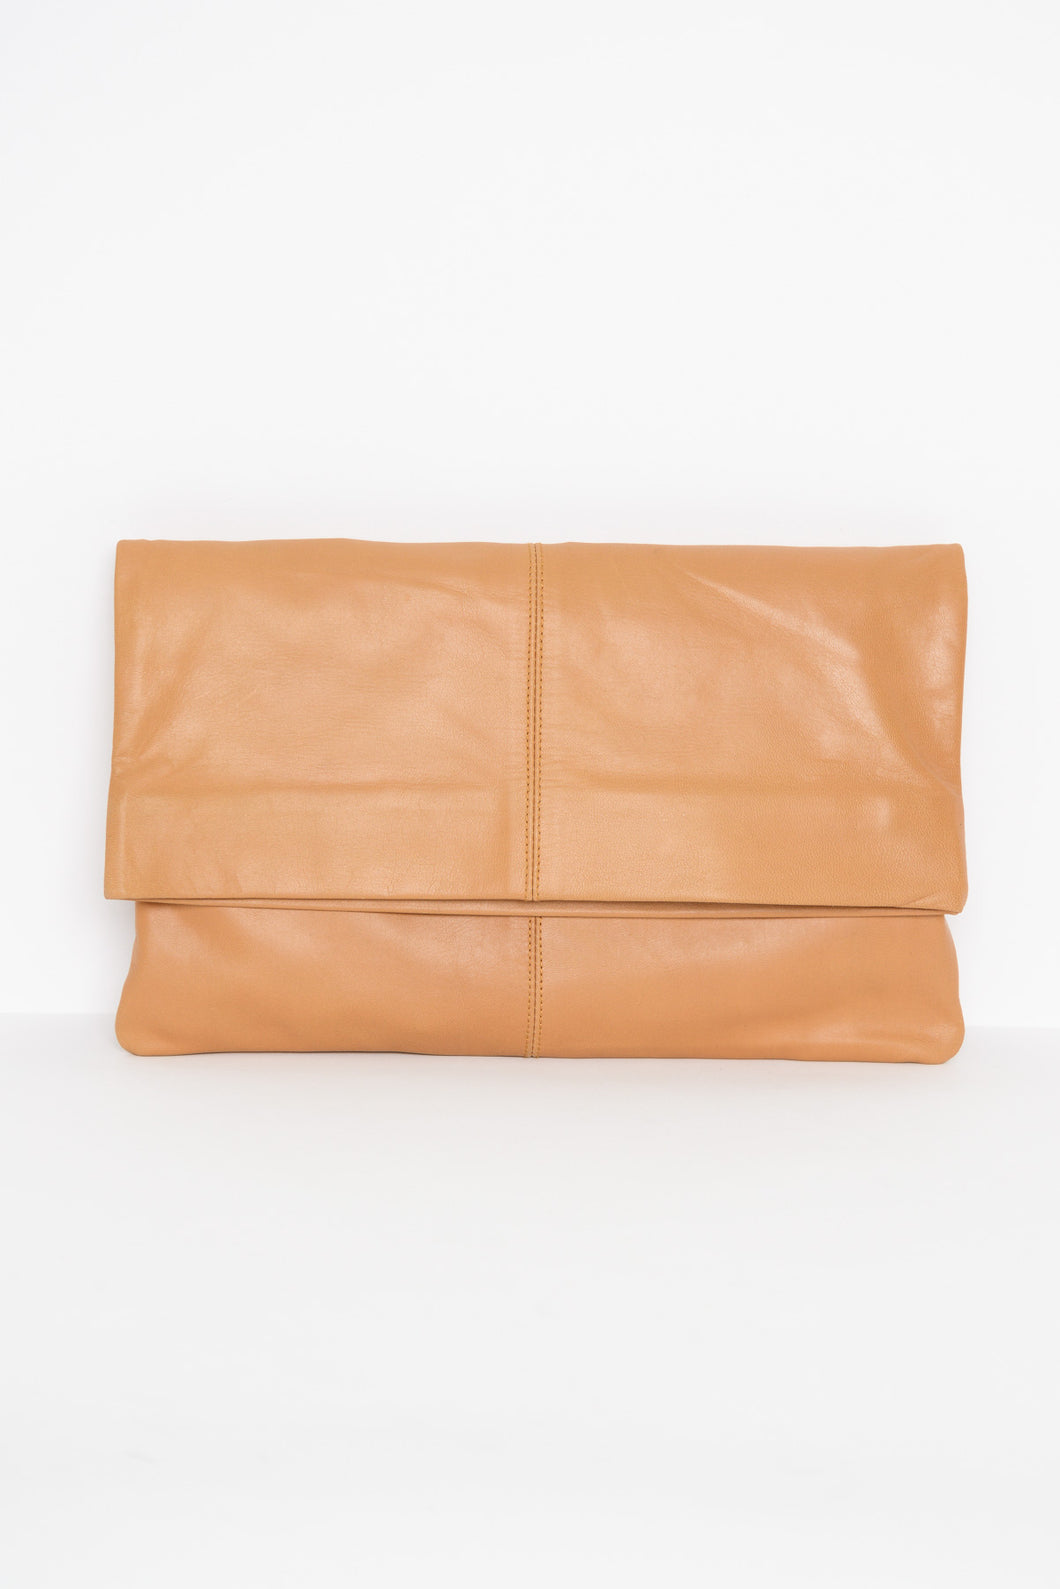 Bambi Tan Foldover Leather Clutch - Blue Bungalow